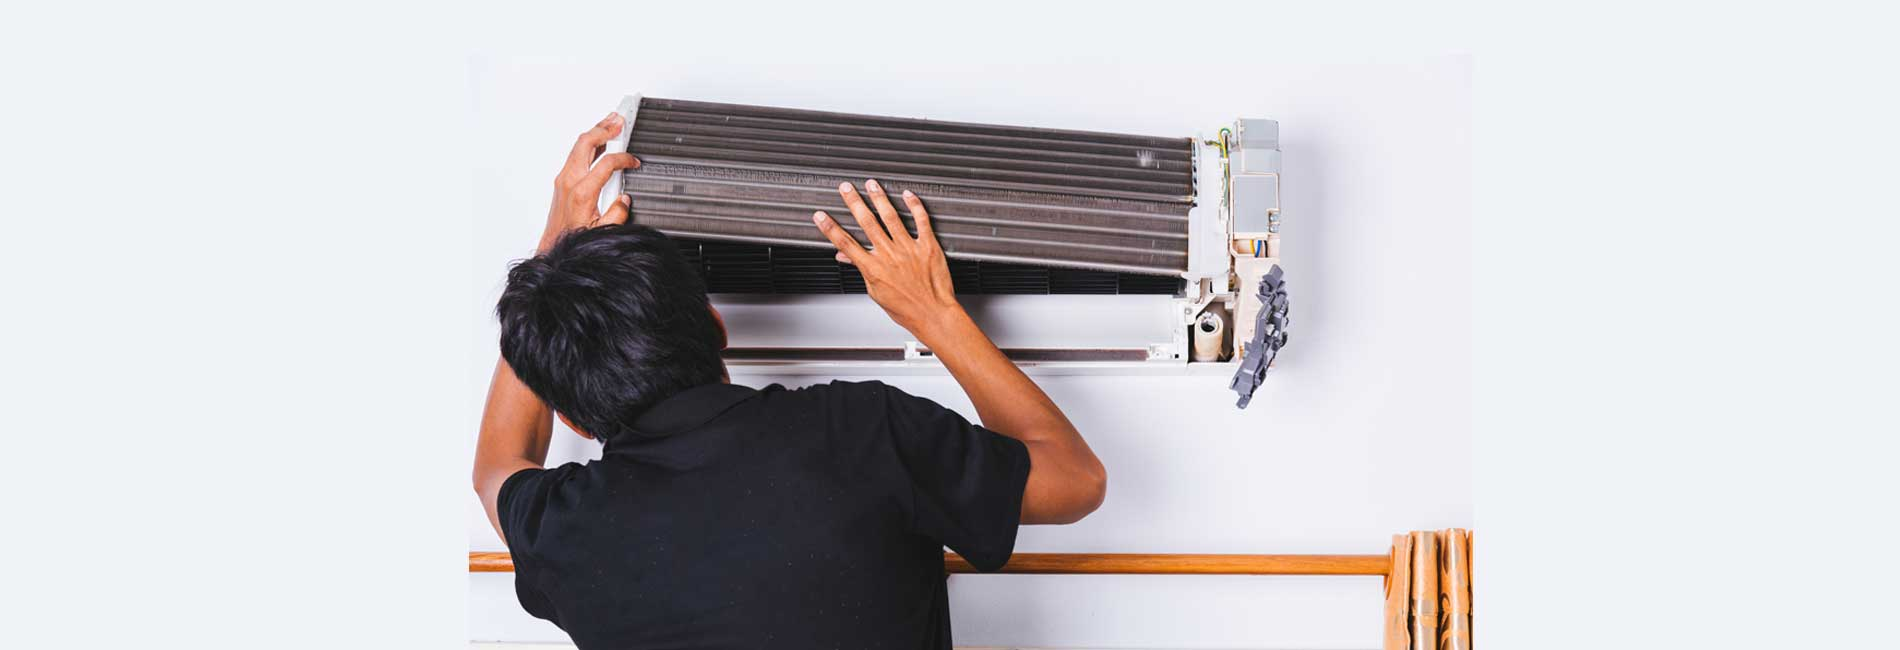 Bluestar Air Condition Repair in Pallikaranai